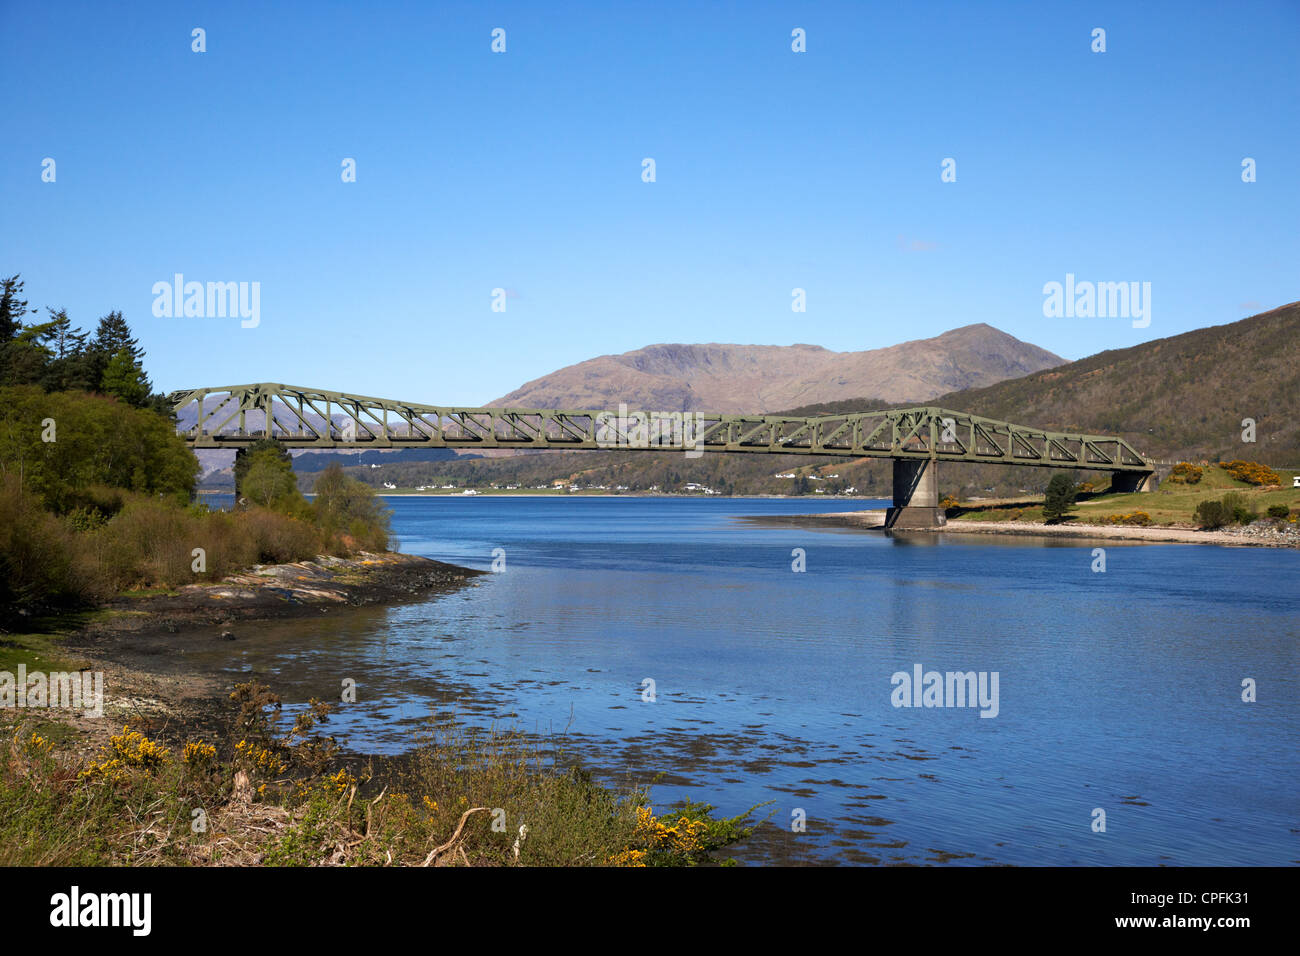 Ballachulish bridge over the narrows between loch leven and loch linnhe carrying the a82 road highlands scotland - Stock Image